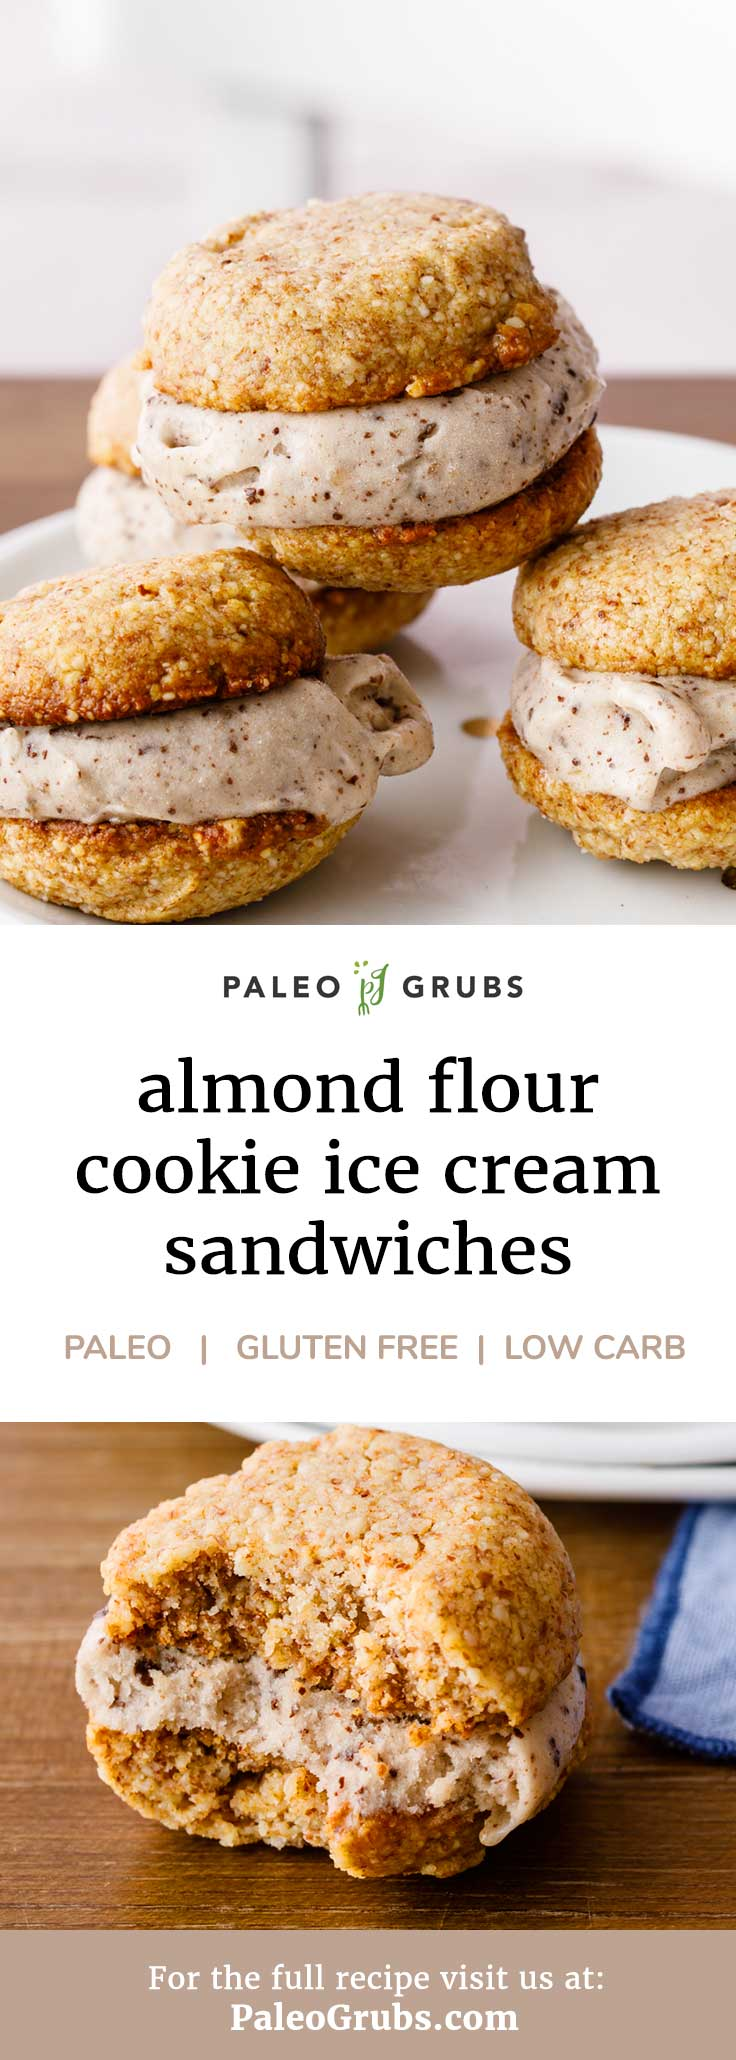 These homemade almond flour cookie ice cream sandwiches are like gold in my house! So good. Kids and husband love them.